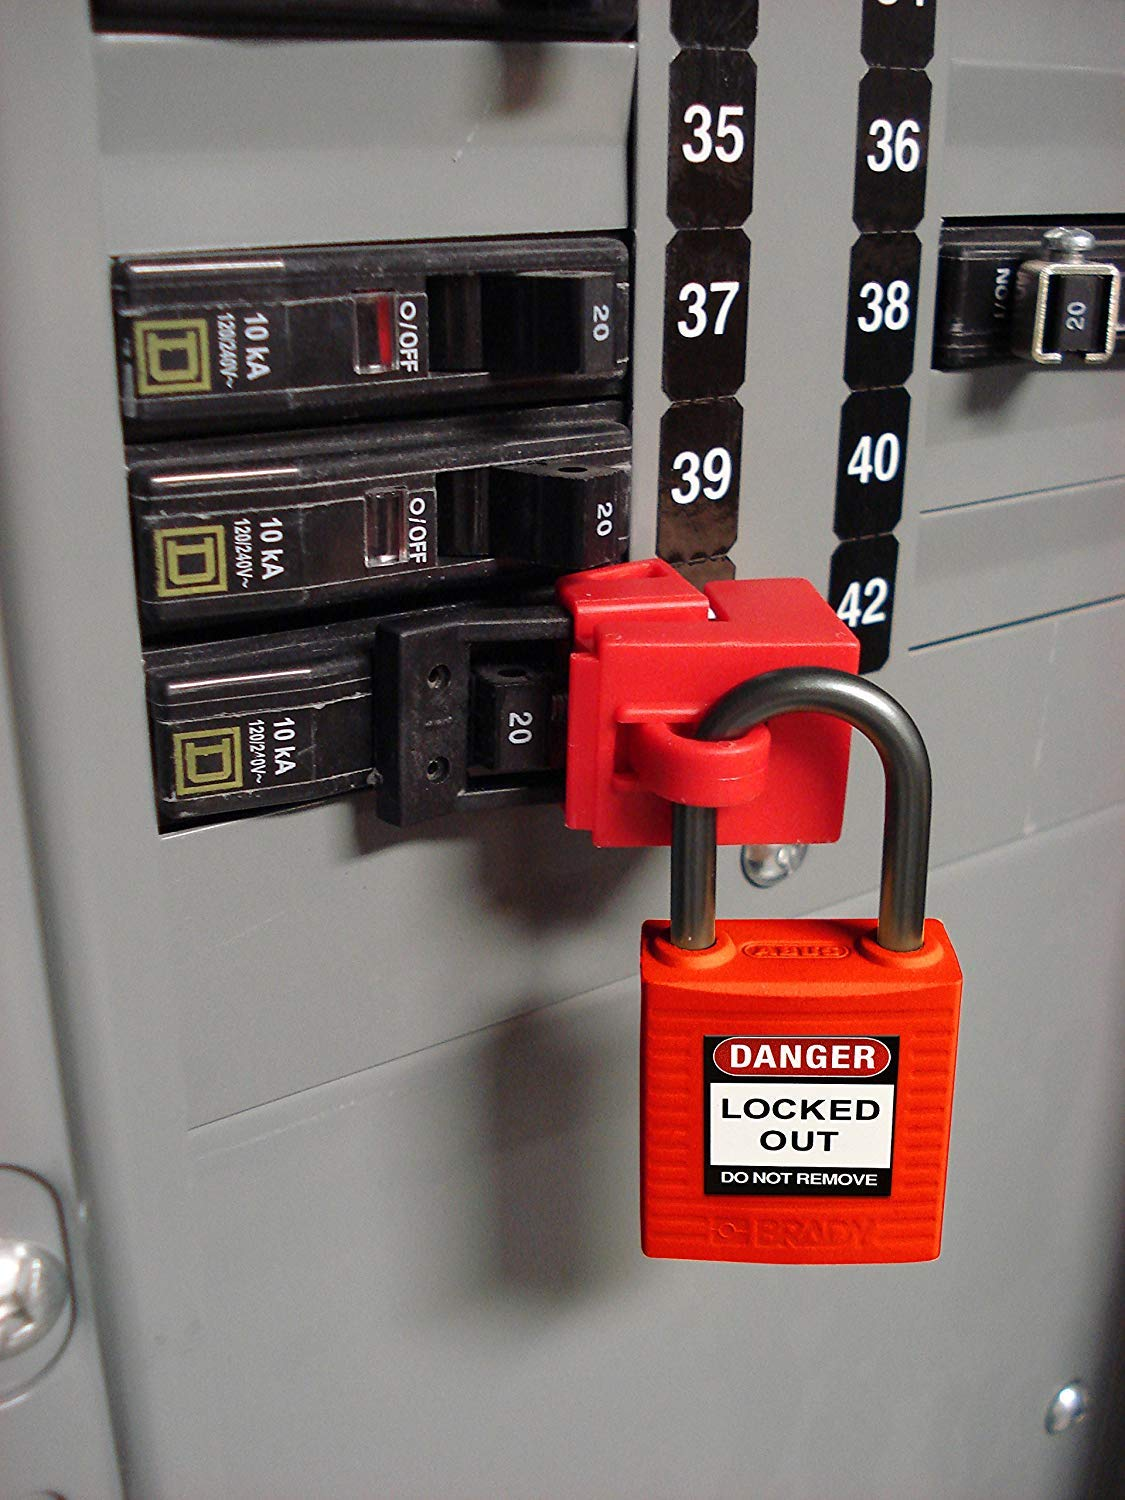 Brady Compact Lockout Tagout Padlock Personal Safety Kit - 123143 - Red (Fоur Расk)